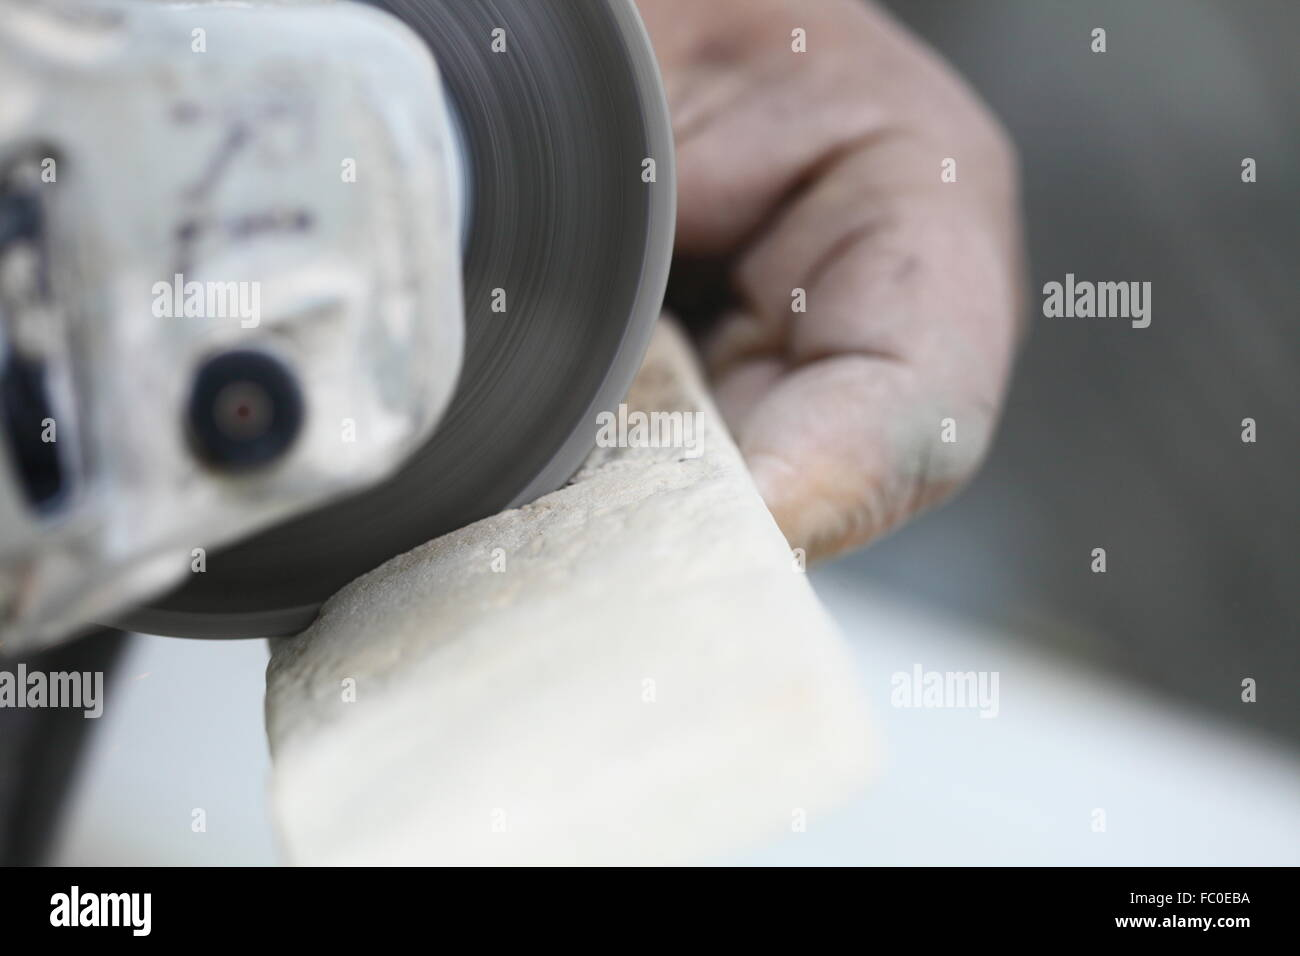 Worker cutting a tile using an angle grinder at construction site construction worker using an angle grinder cutting tile stock photo dailygadgetfo Image collections